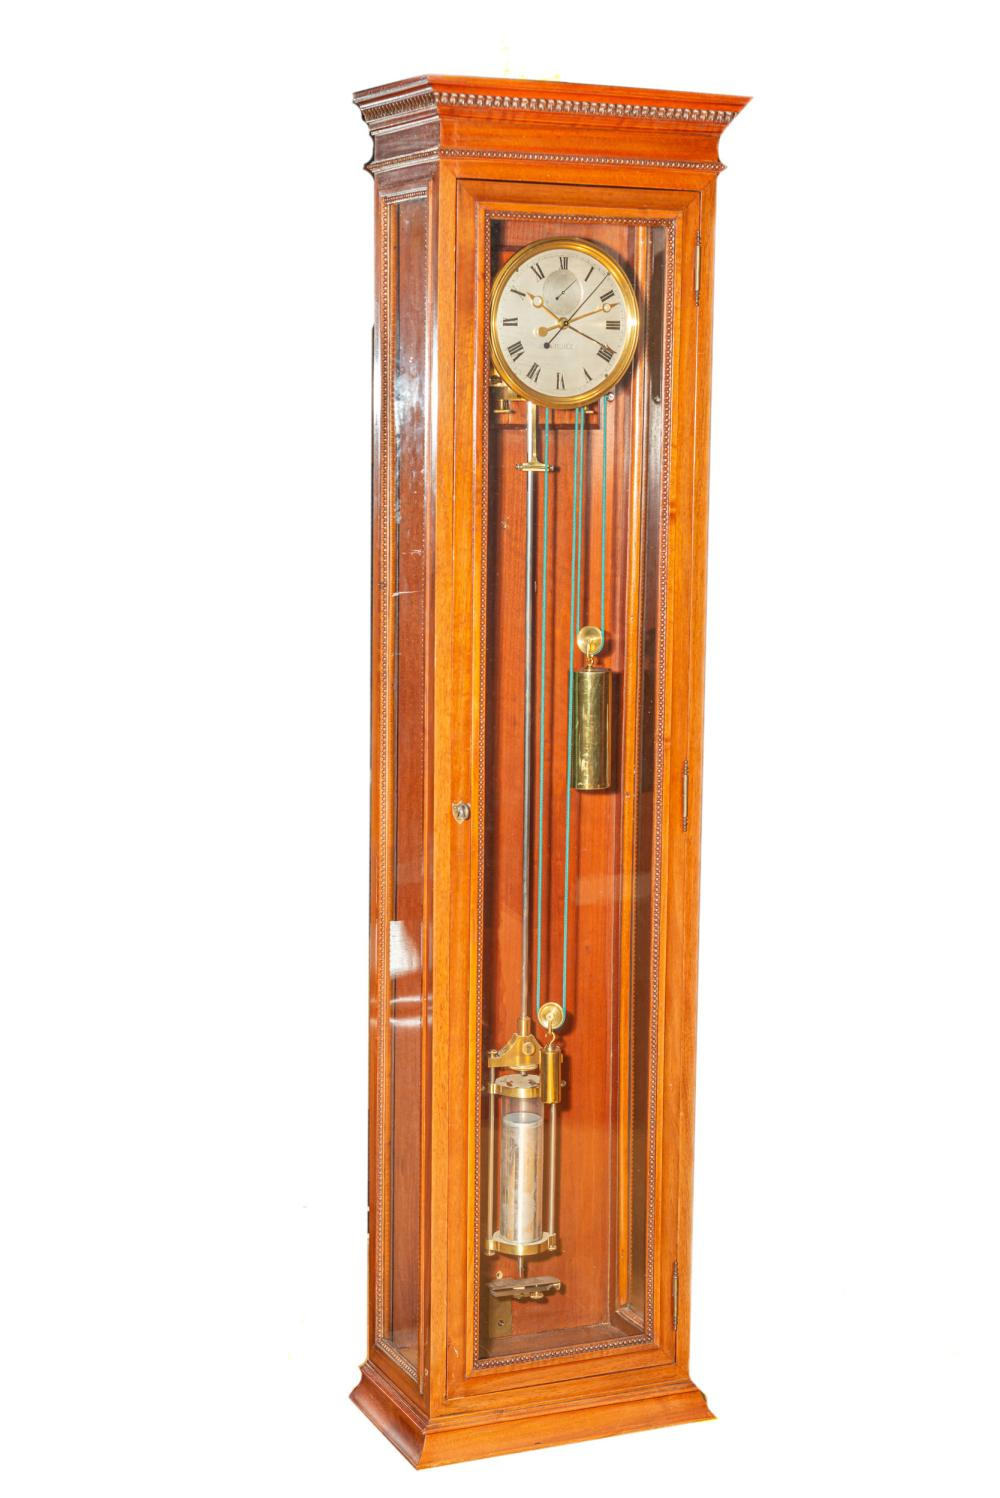 ANATOLE PERÉE - ONE MONTH-GOING PRECISION WALL REGULATOR, DEAD CENTRE-SECONDS, SOLAR EQUATION OF TIME MINUTES AND SECONDS INDICATION; MAHOGANY, GILDED METAL AND GLASS